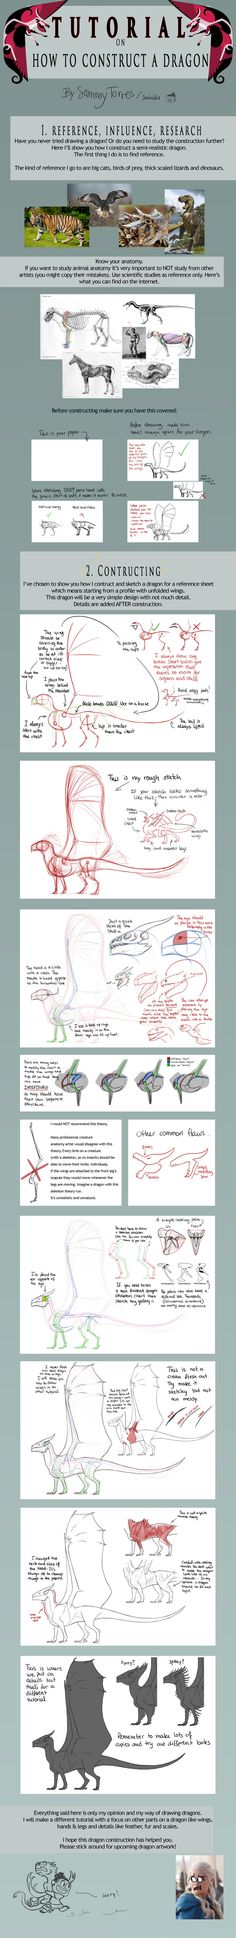 TUTORIAL: How to Construct a Dragon by SammyTorres on deviantART